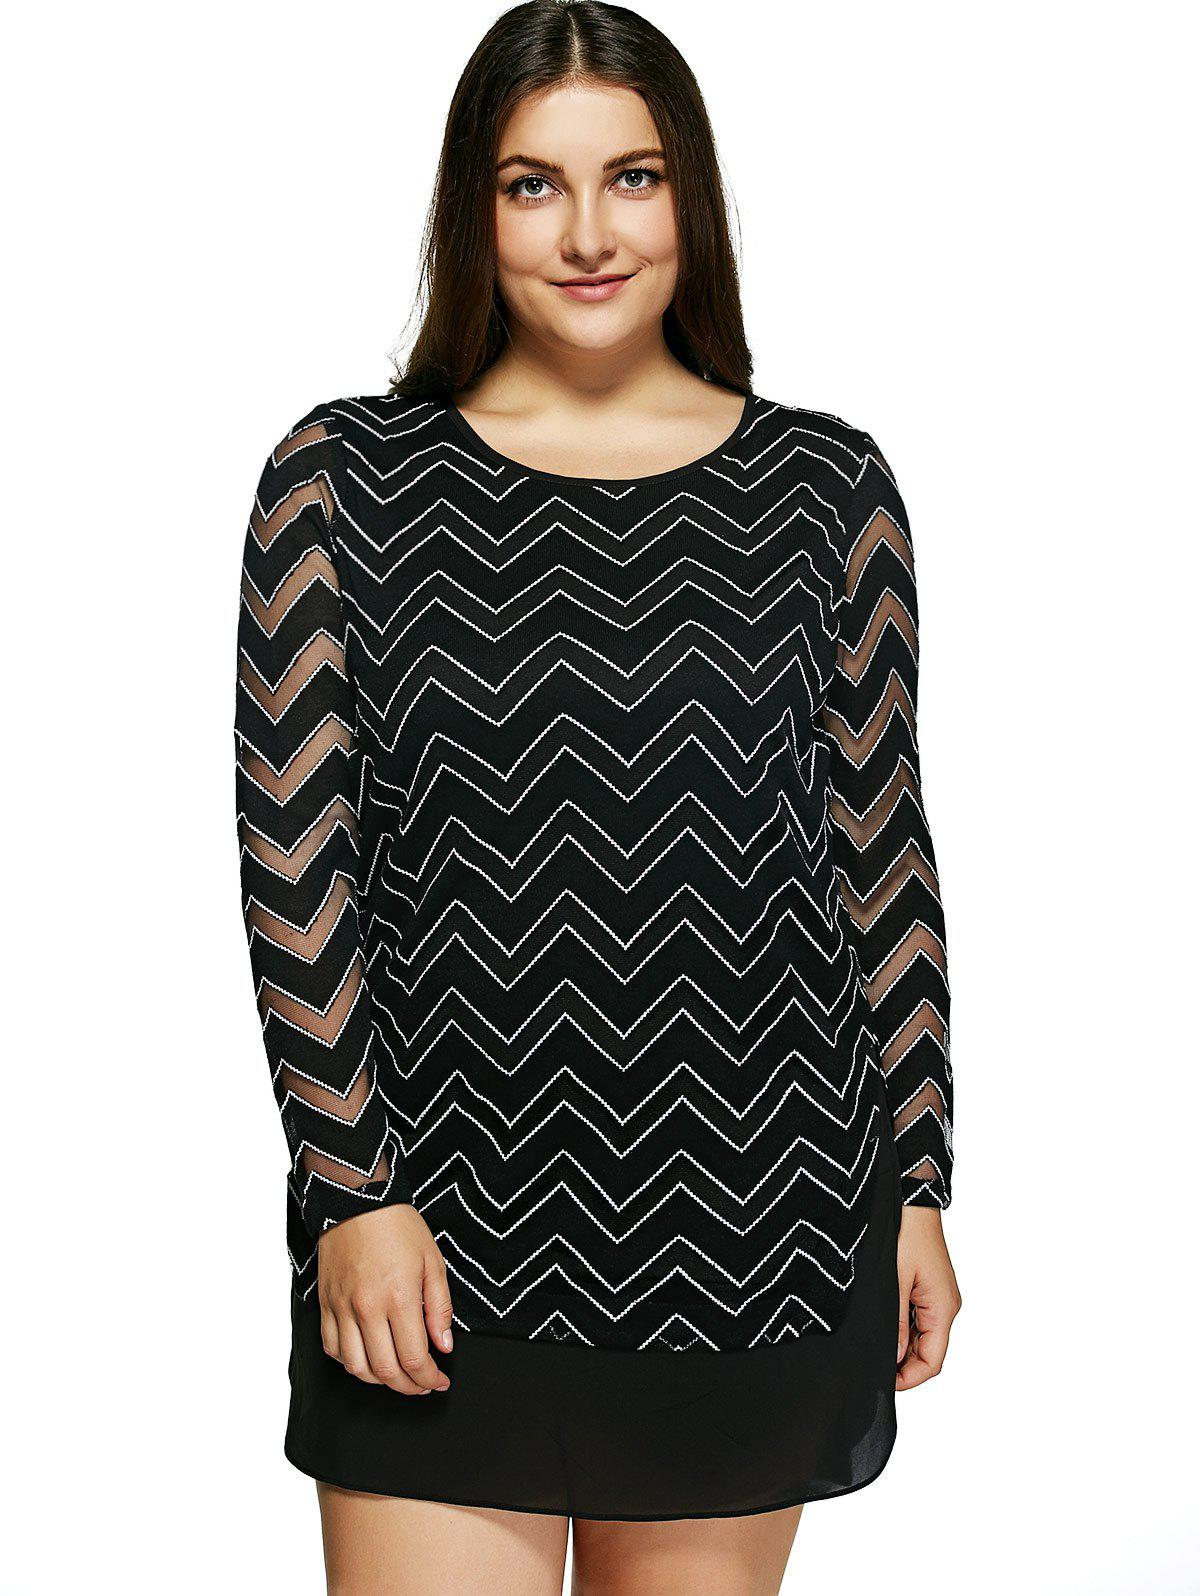 Oversized Trendy Chevron Print See-Through Dress - BLACK 6XL